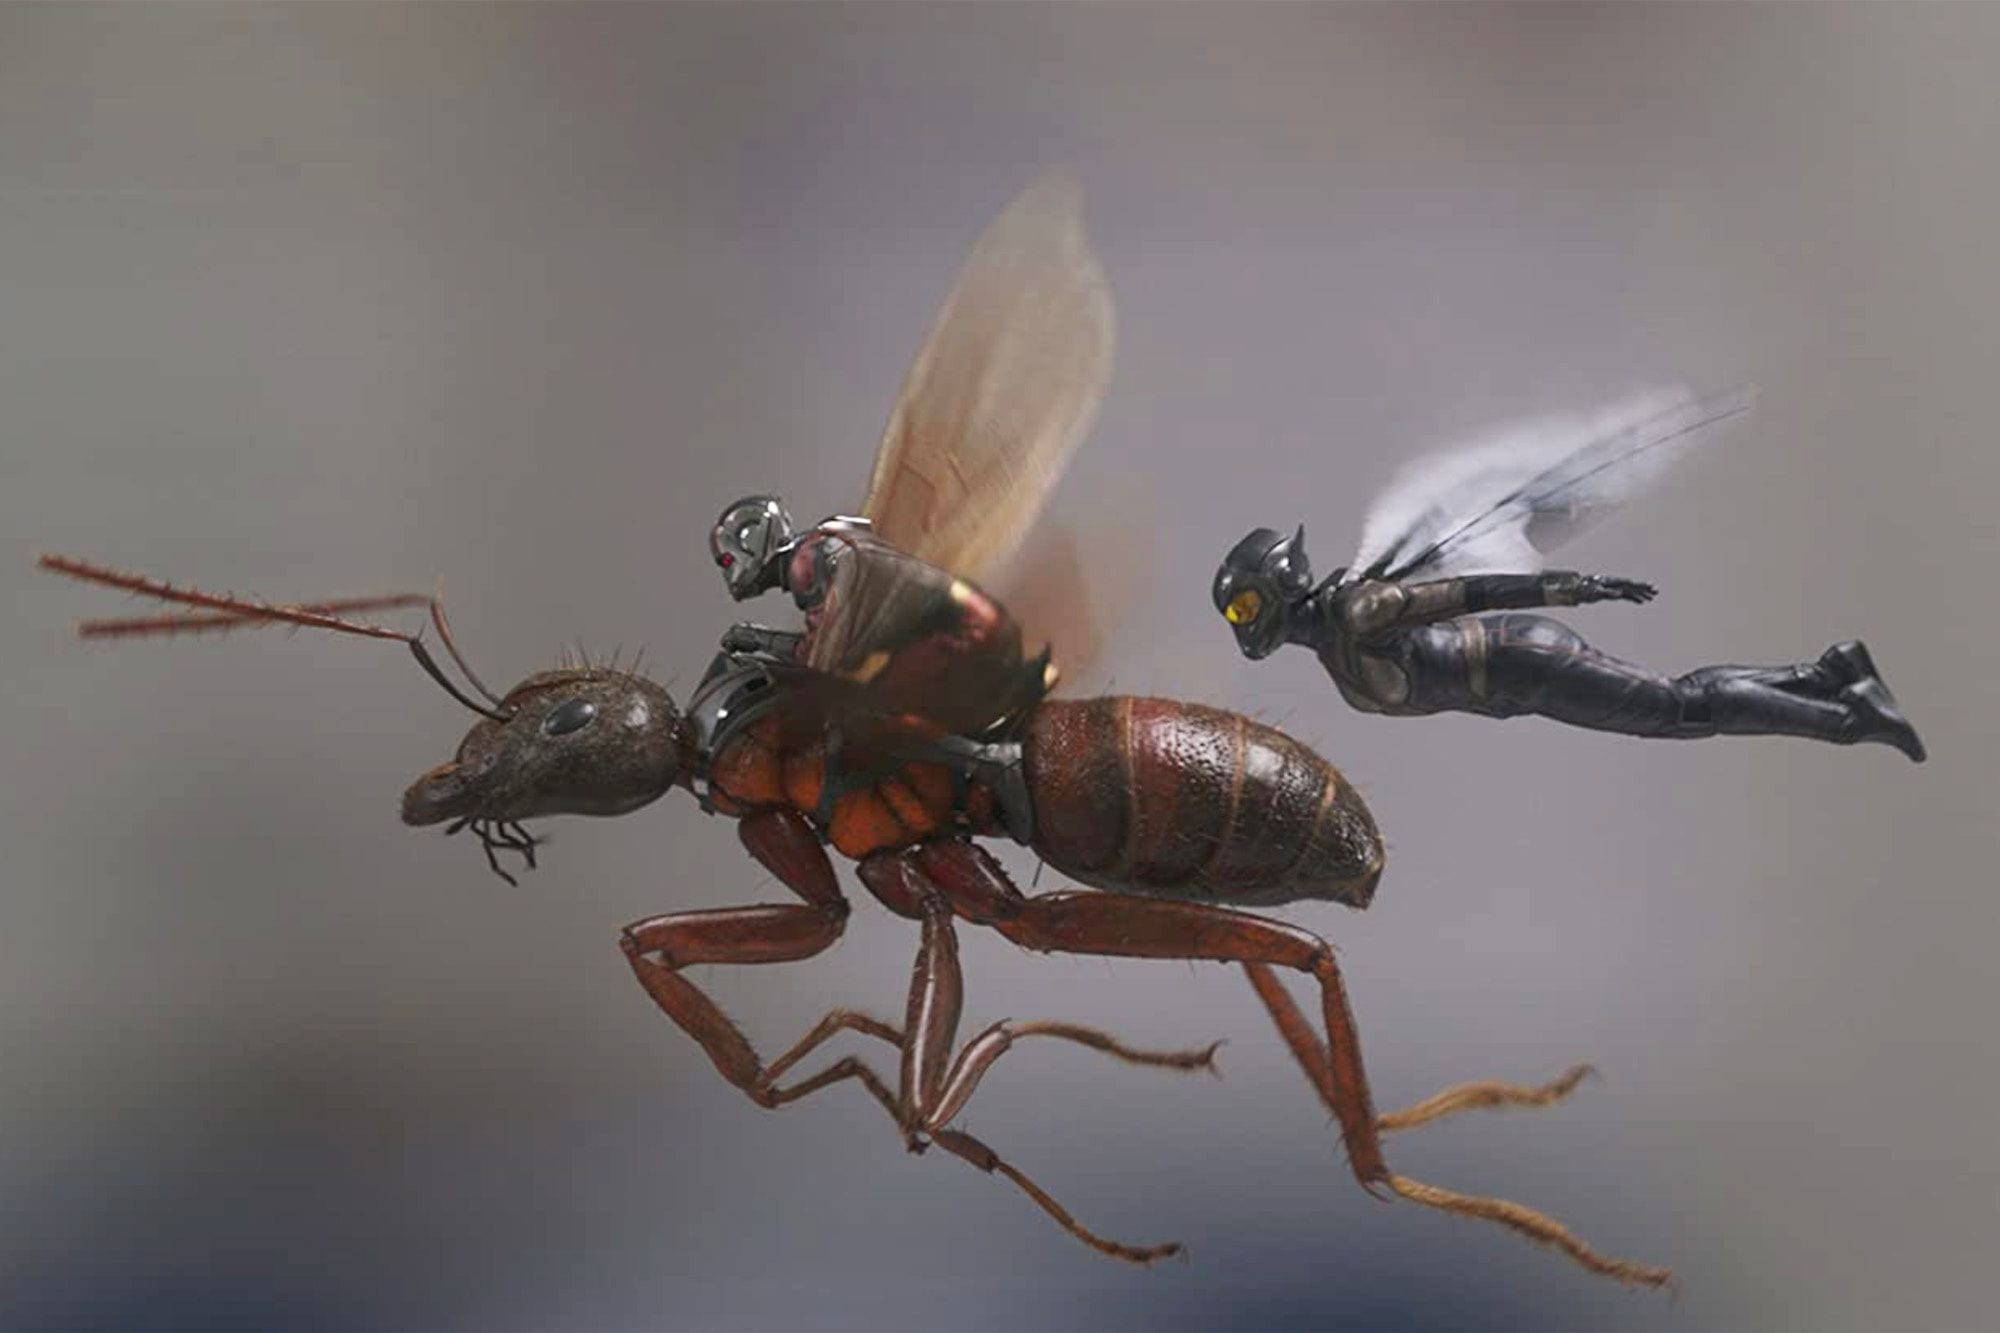 The Obstacles in 'Ant-Man and the Wasp' Are Not Typical of MCU